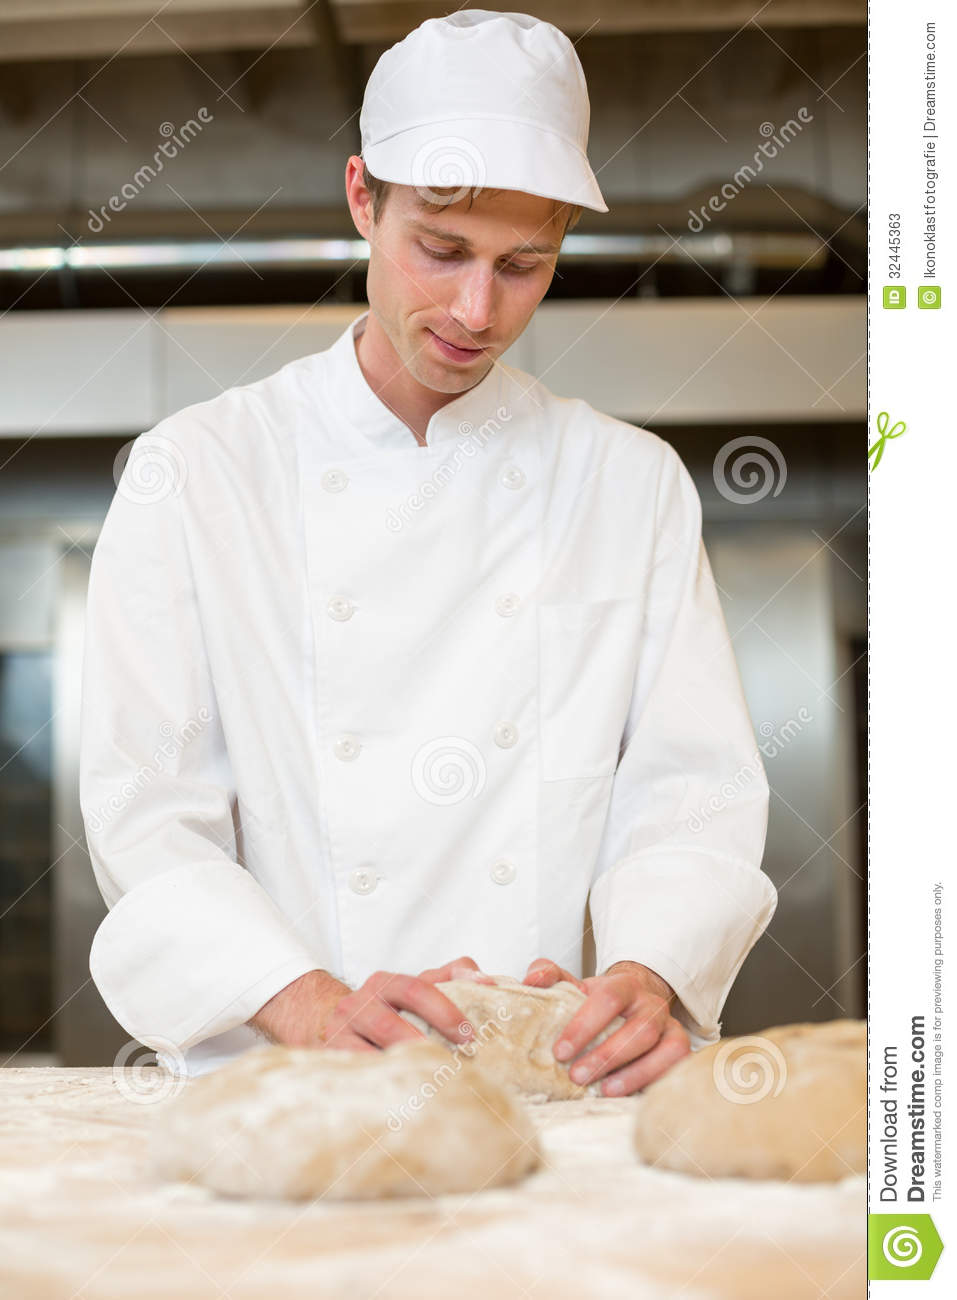 Baker Kneading Dough In Bakery Or Bakehouse Stock Photos - Image: 32445363